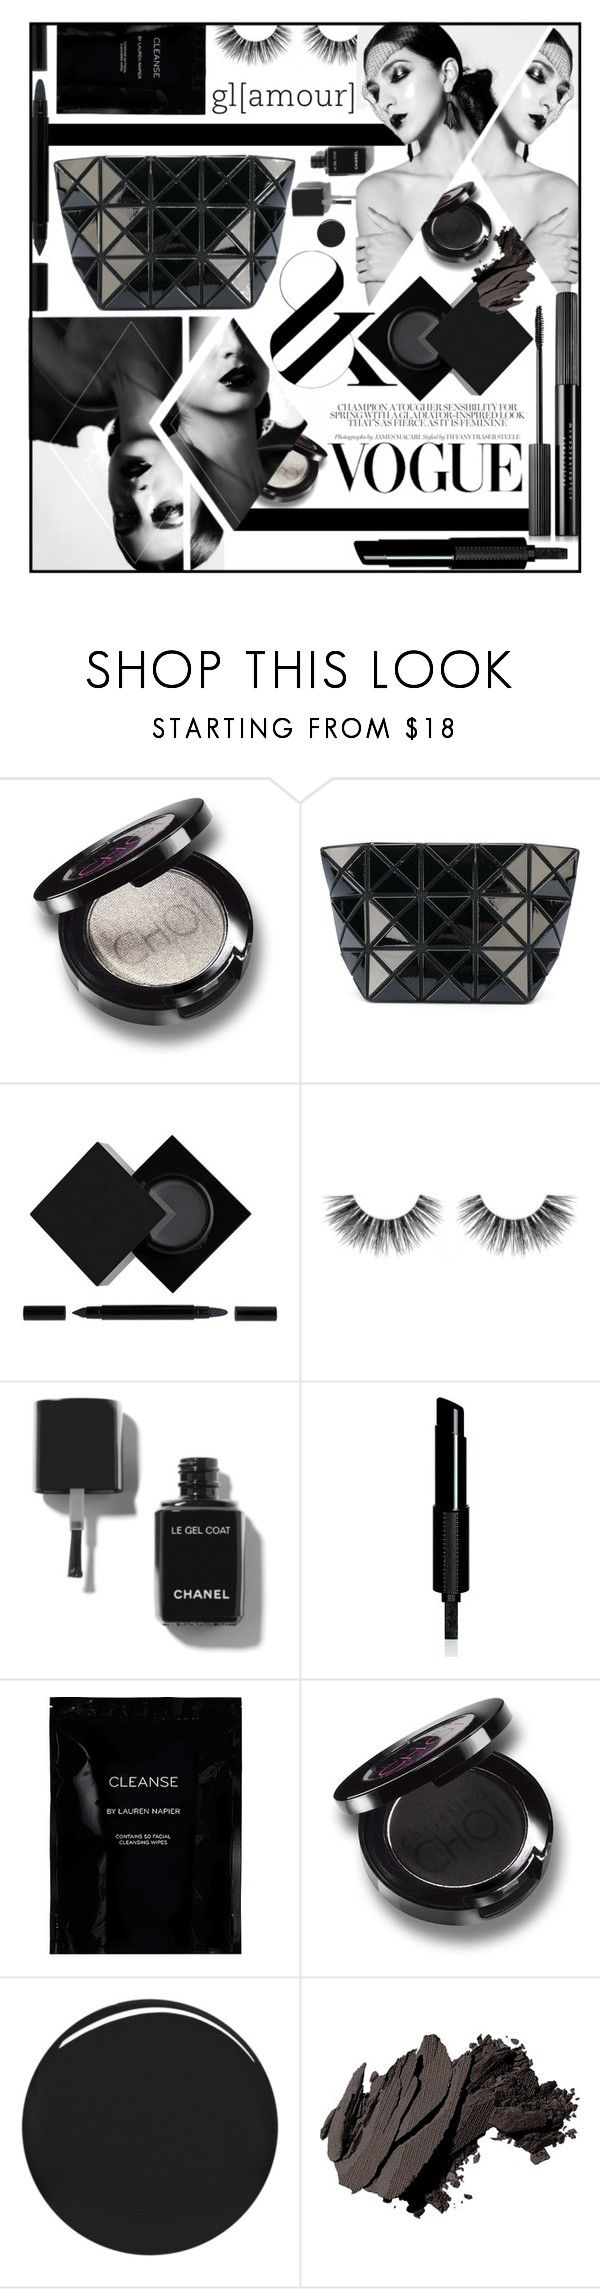 """""""Untitled #684"""" by scarletj17 ❤ liked on Polyvore featuring beauty, Christina Choi Cosmetics, Bao Bao by Issey Miyake, Serge Lutens, Velour Lashes, Givenchy, Cleanse by Lauren Napier, Burberry, Bobbi Brown Cosmetics and Estée Lauder"""